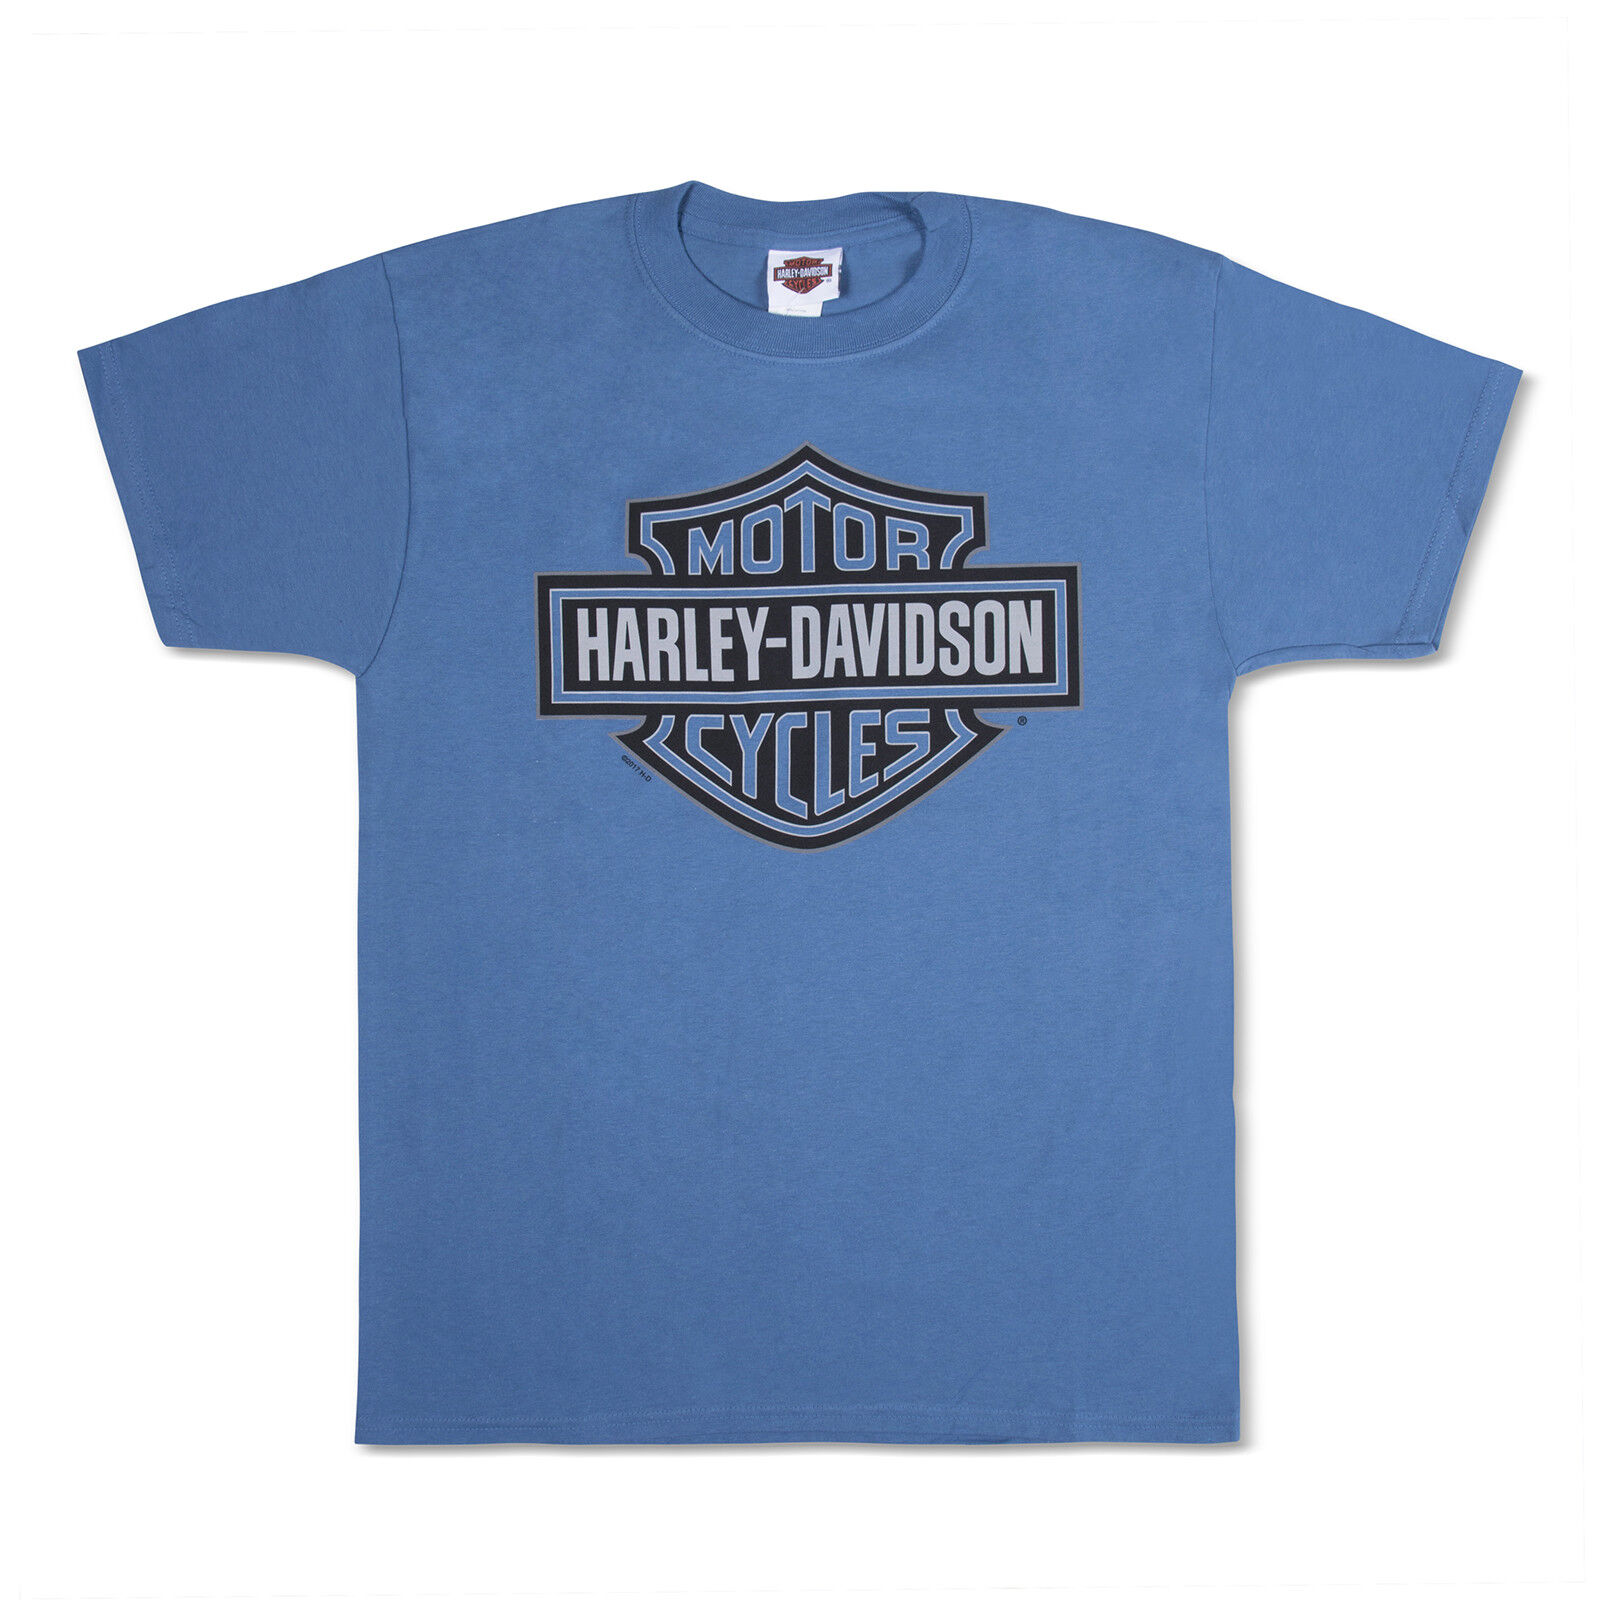 Harley-Davidson T-Shirt Biker Short Sleeve Tel-Aviv Israel bluee Jerusalem Photo